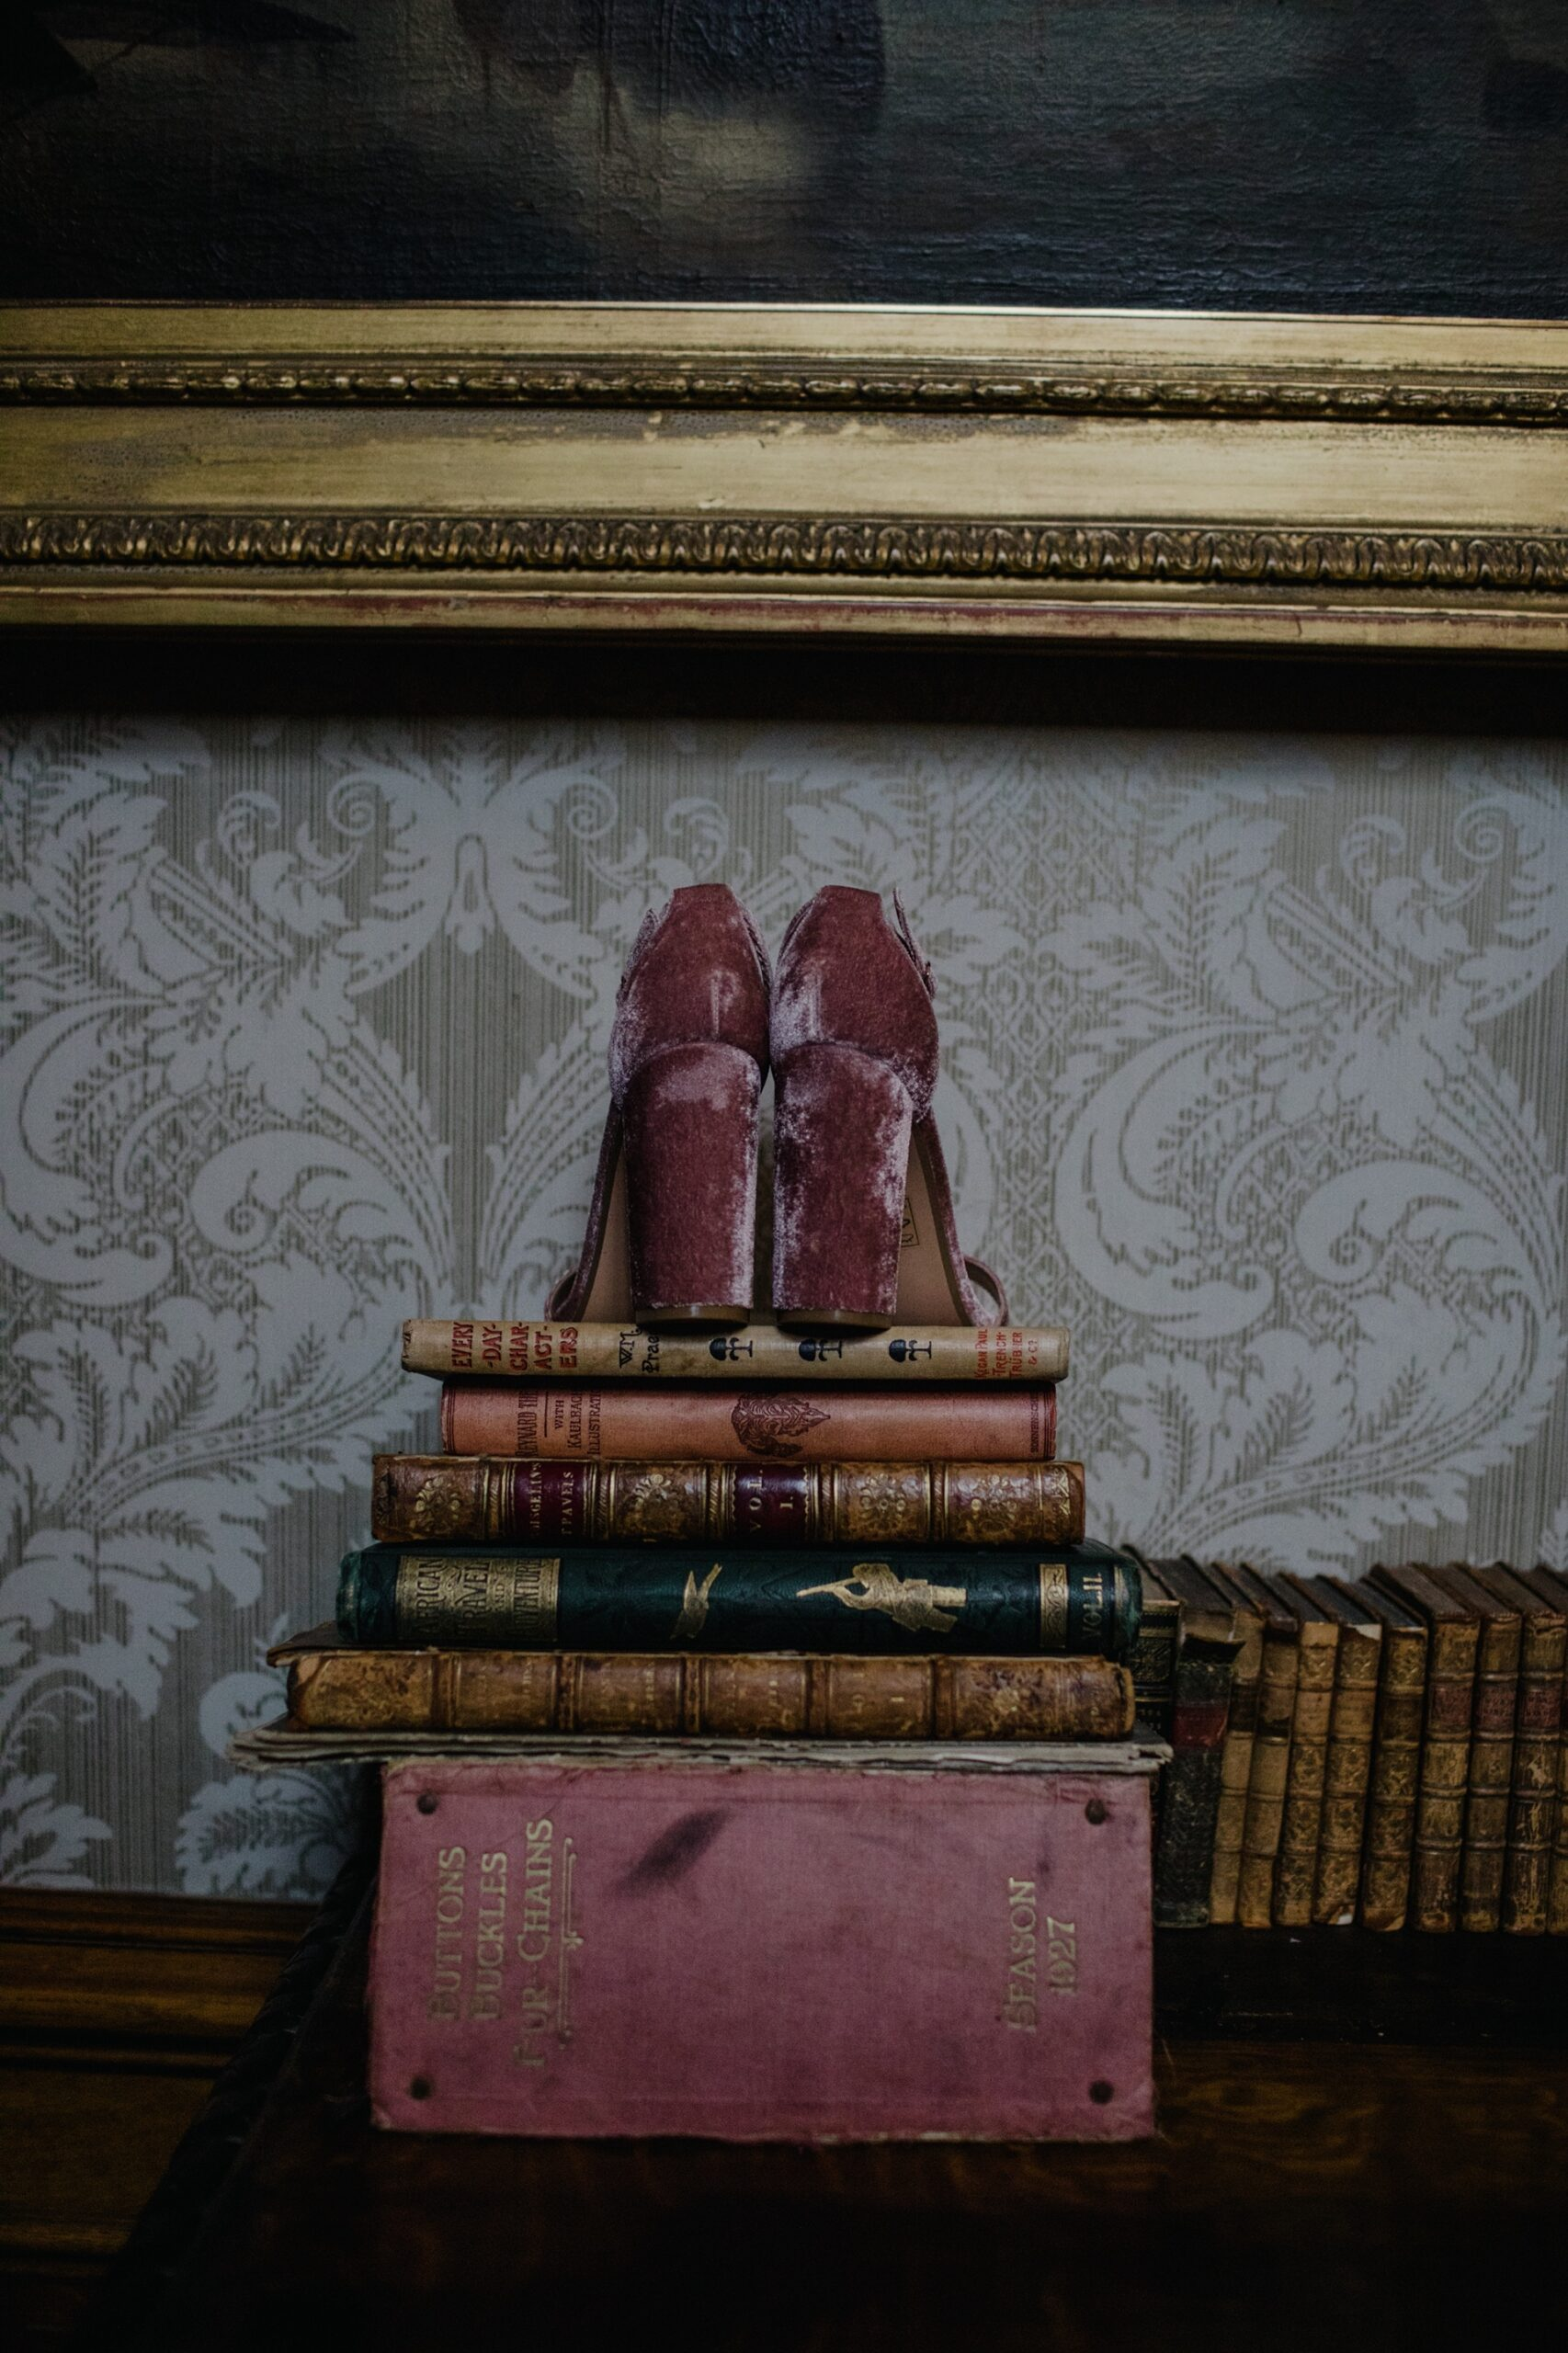 pink velvet shoes on books in cambo house